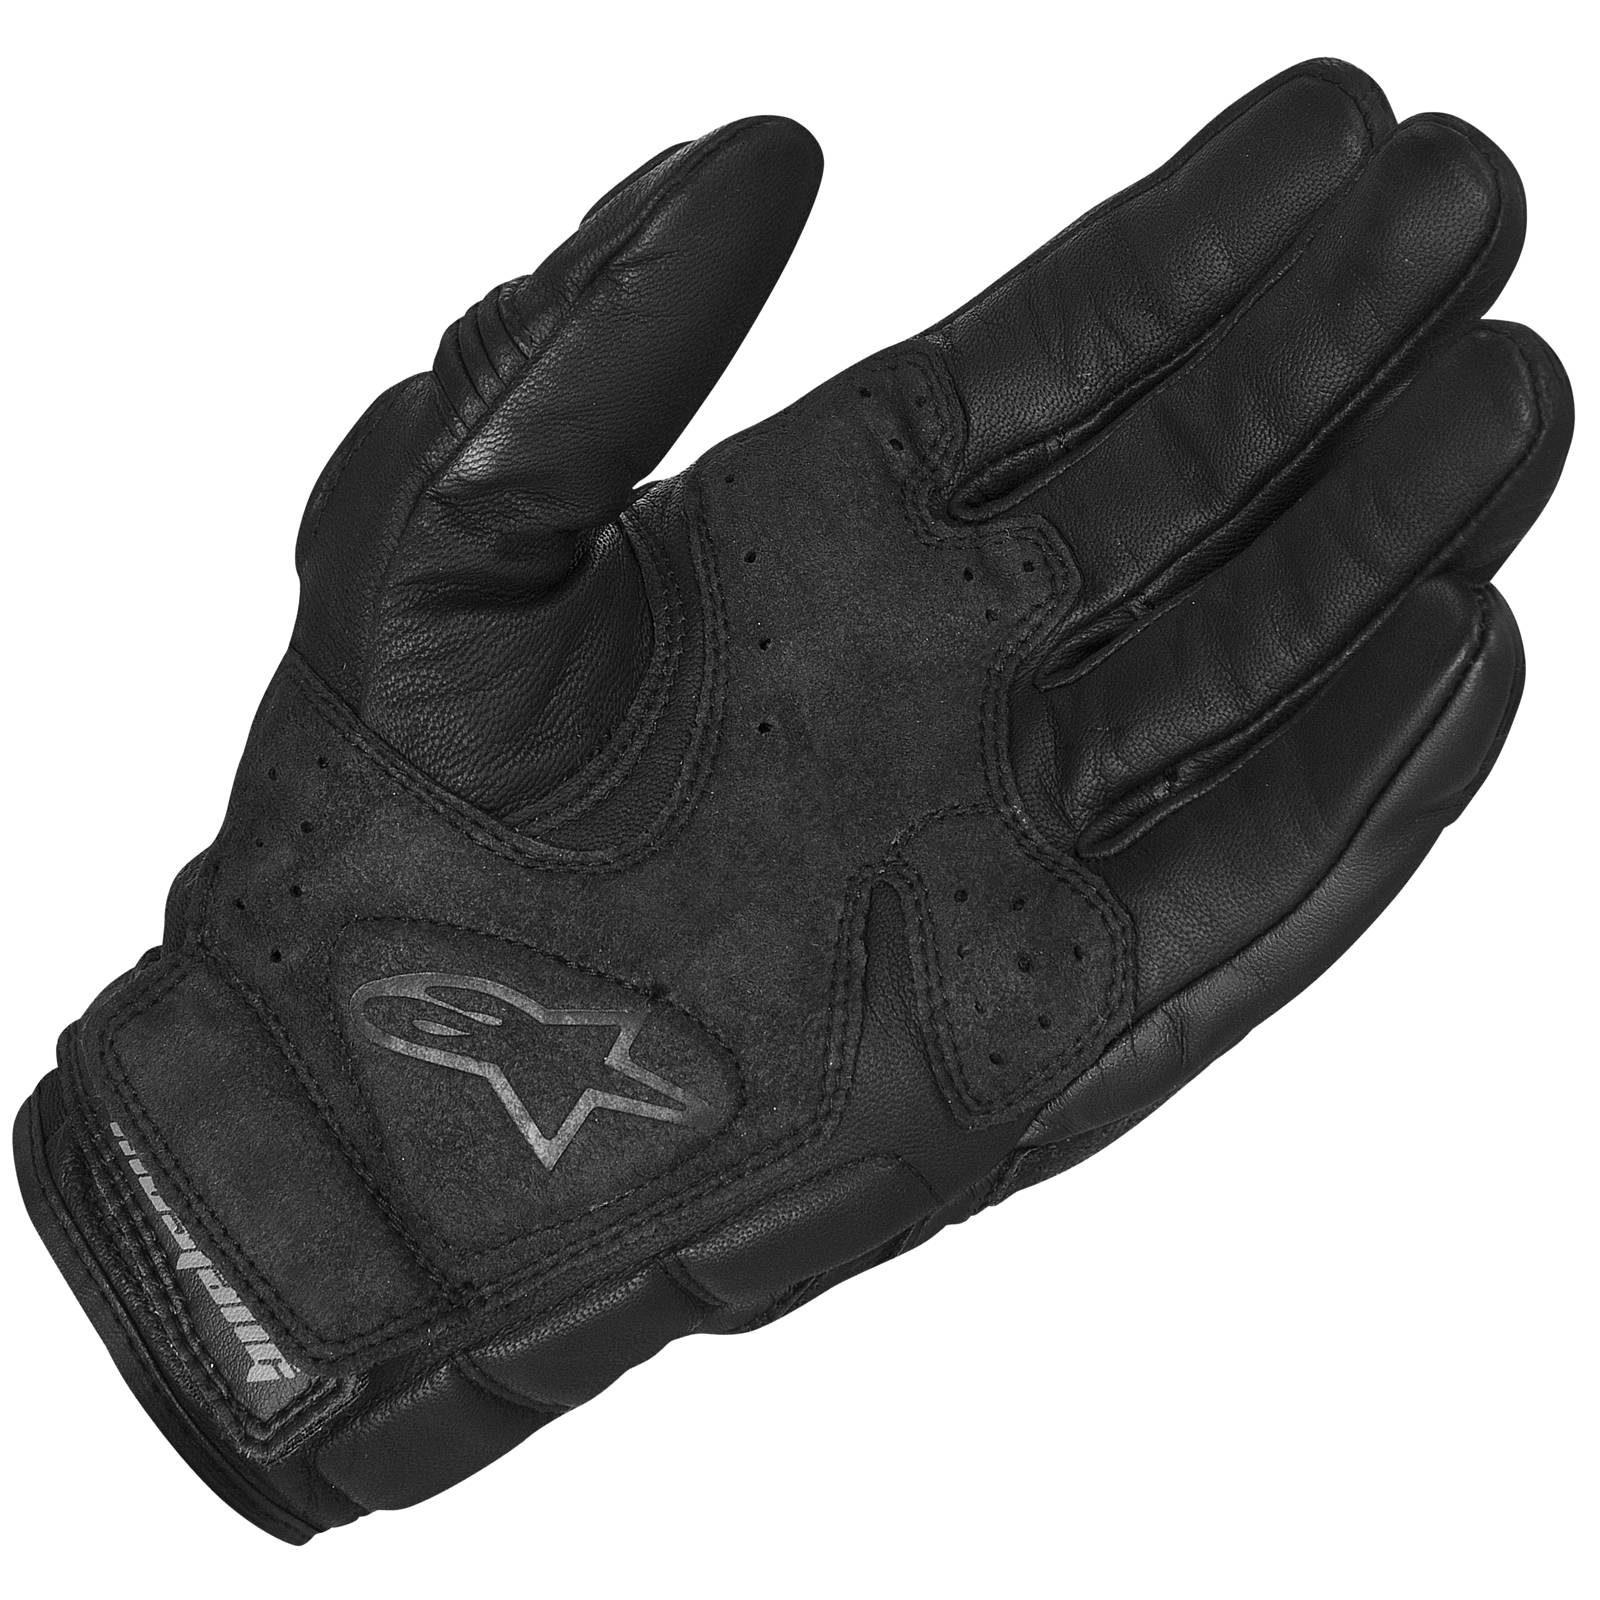 Motorcycle gloves hard knuckles - Thumbnail 5 Thumbnail 6 Thumbnail 7 Thumbnail 8